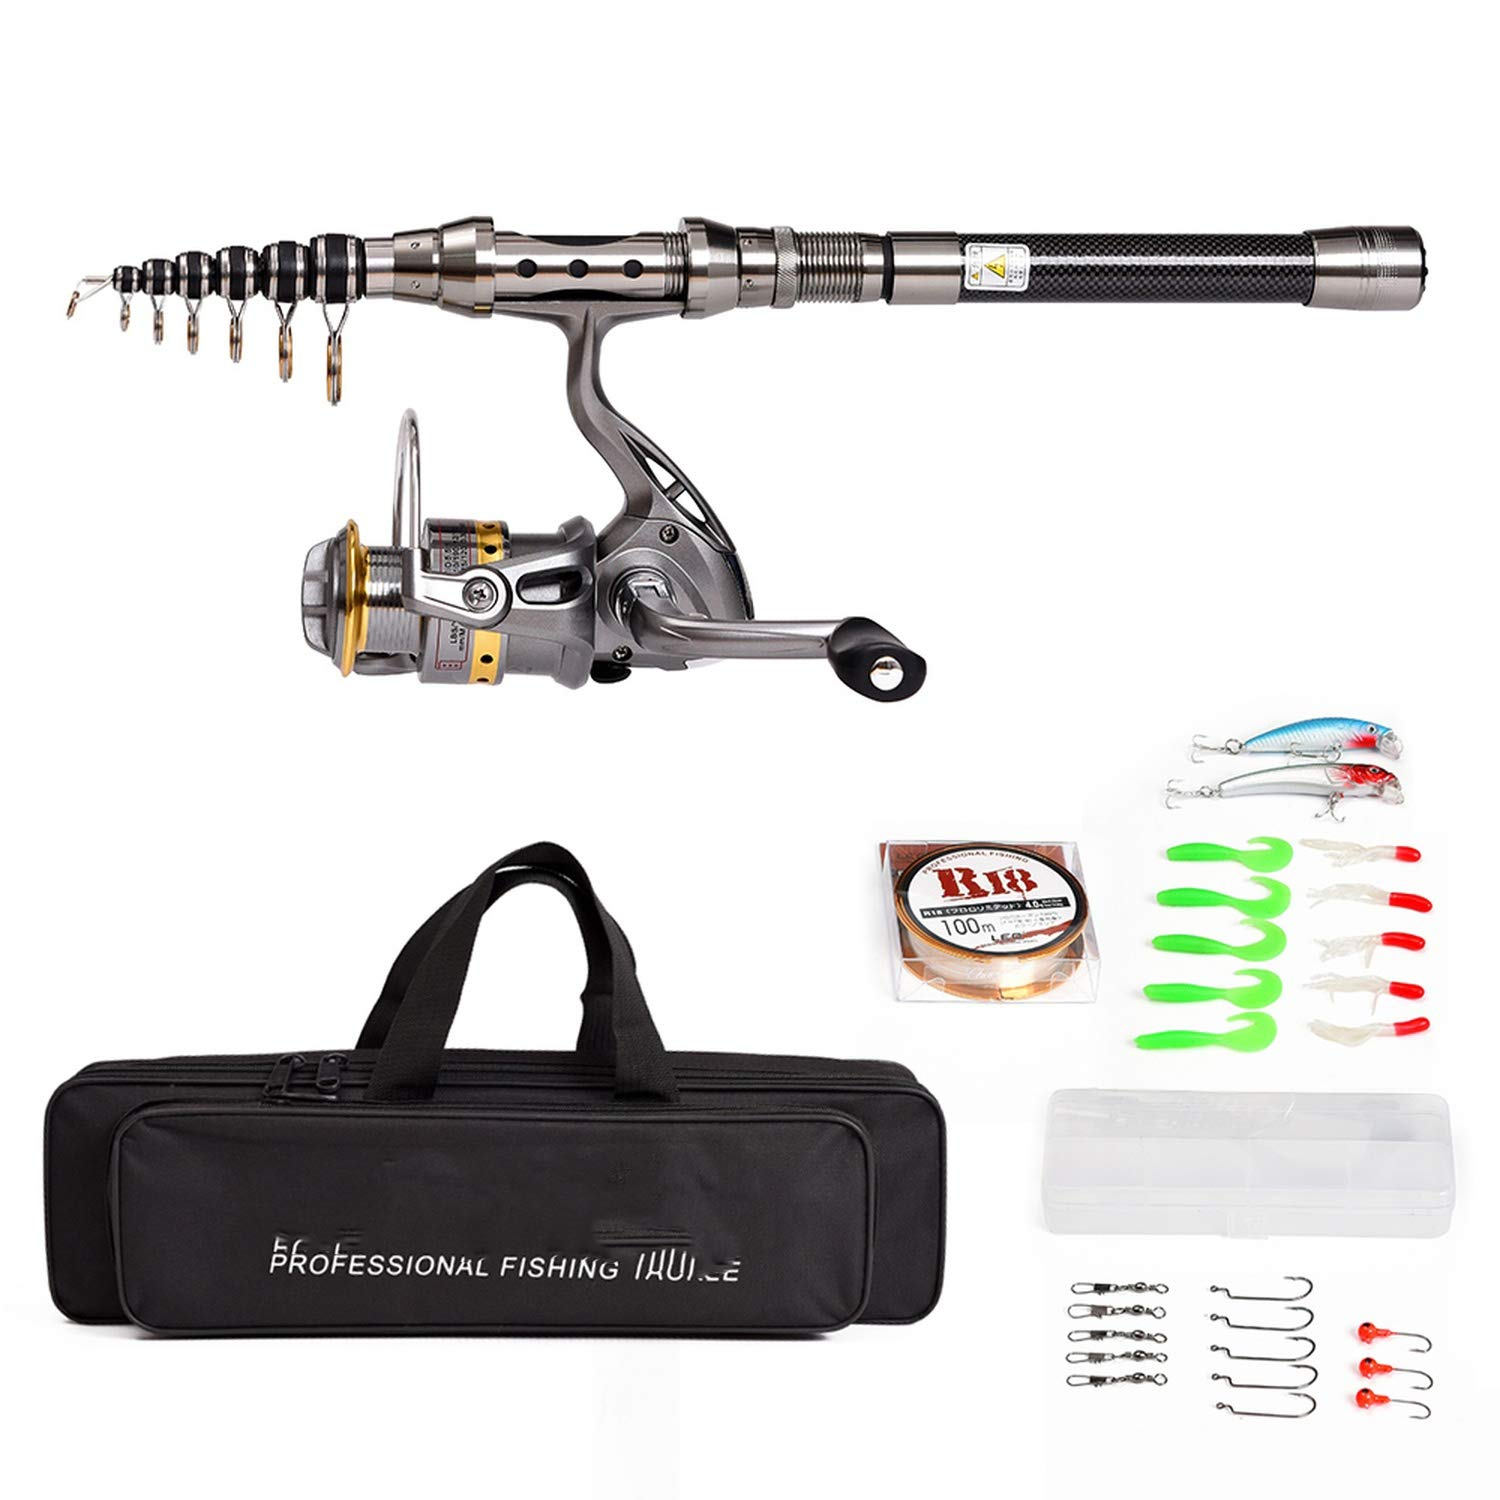 White 2 1 m Telescopic Fishing Rods Reel Combo 100M Fishing Line Lures Hooks Jig Head Bag Accessories Full Kit Spinning Fish Pole Set